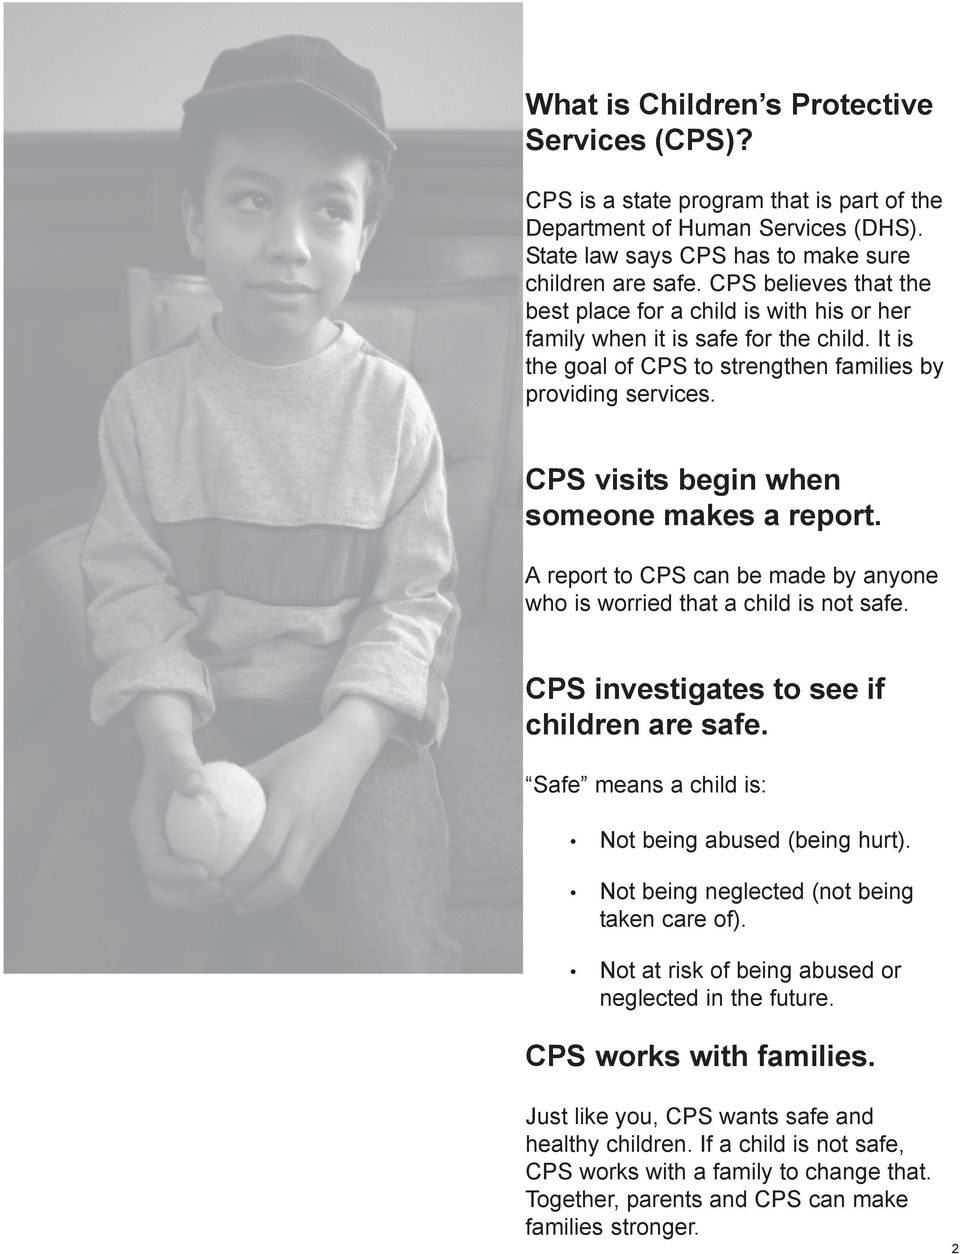 CPS visits begin when someone makes a report. A report to CPS can be made by anyone who is worried that a child is not safe. CPS investigates to see if children are safe.